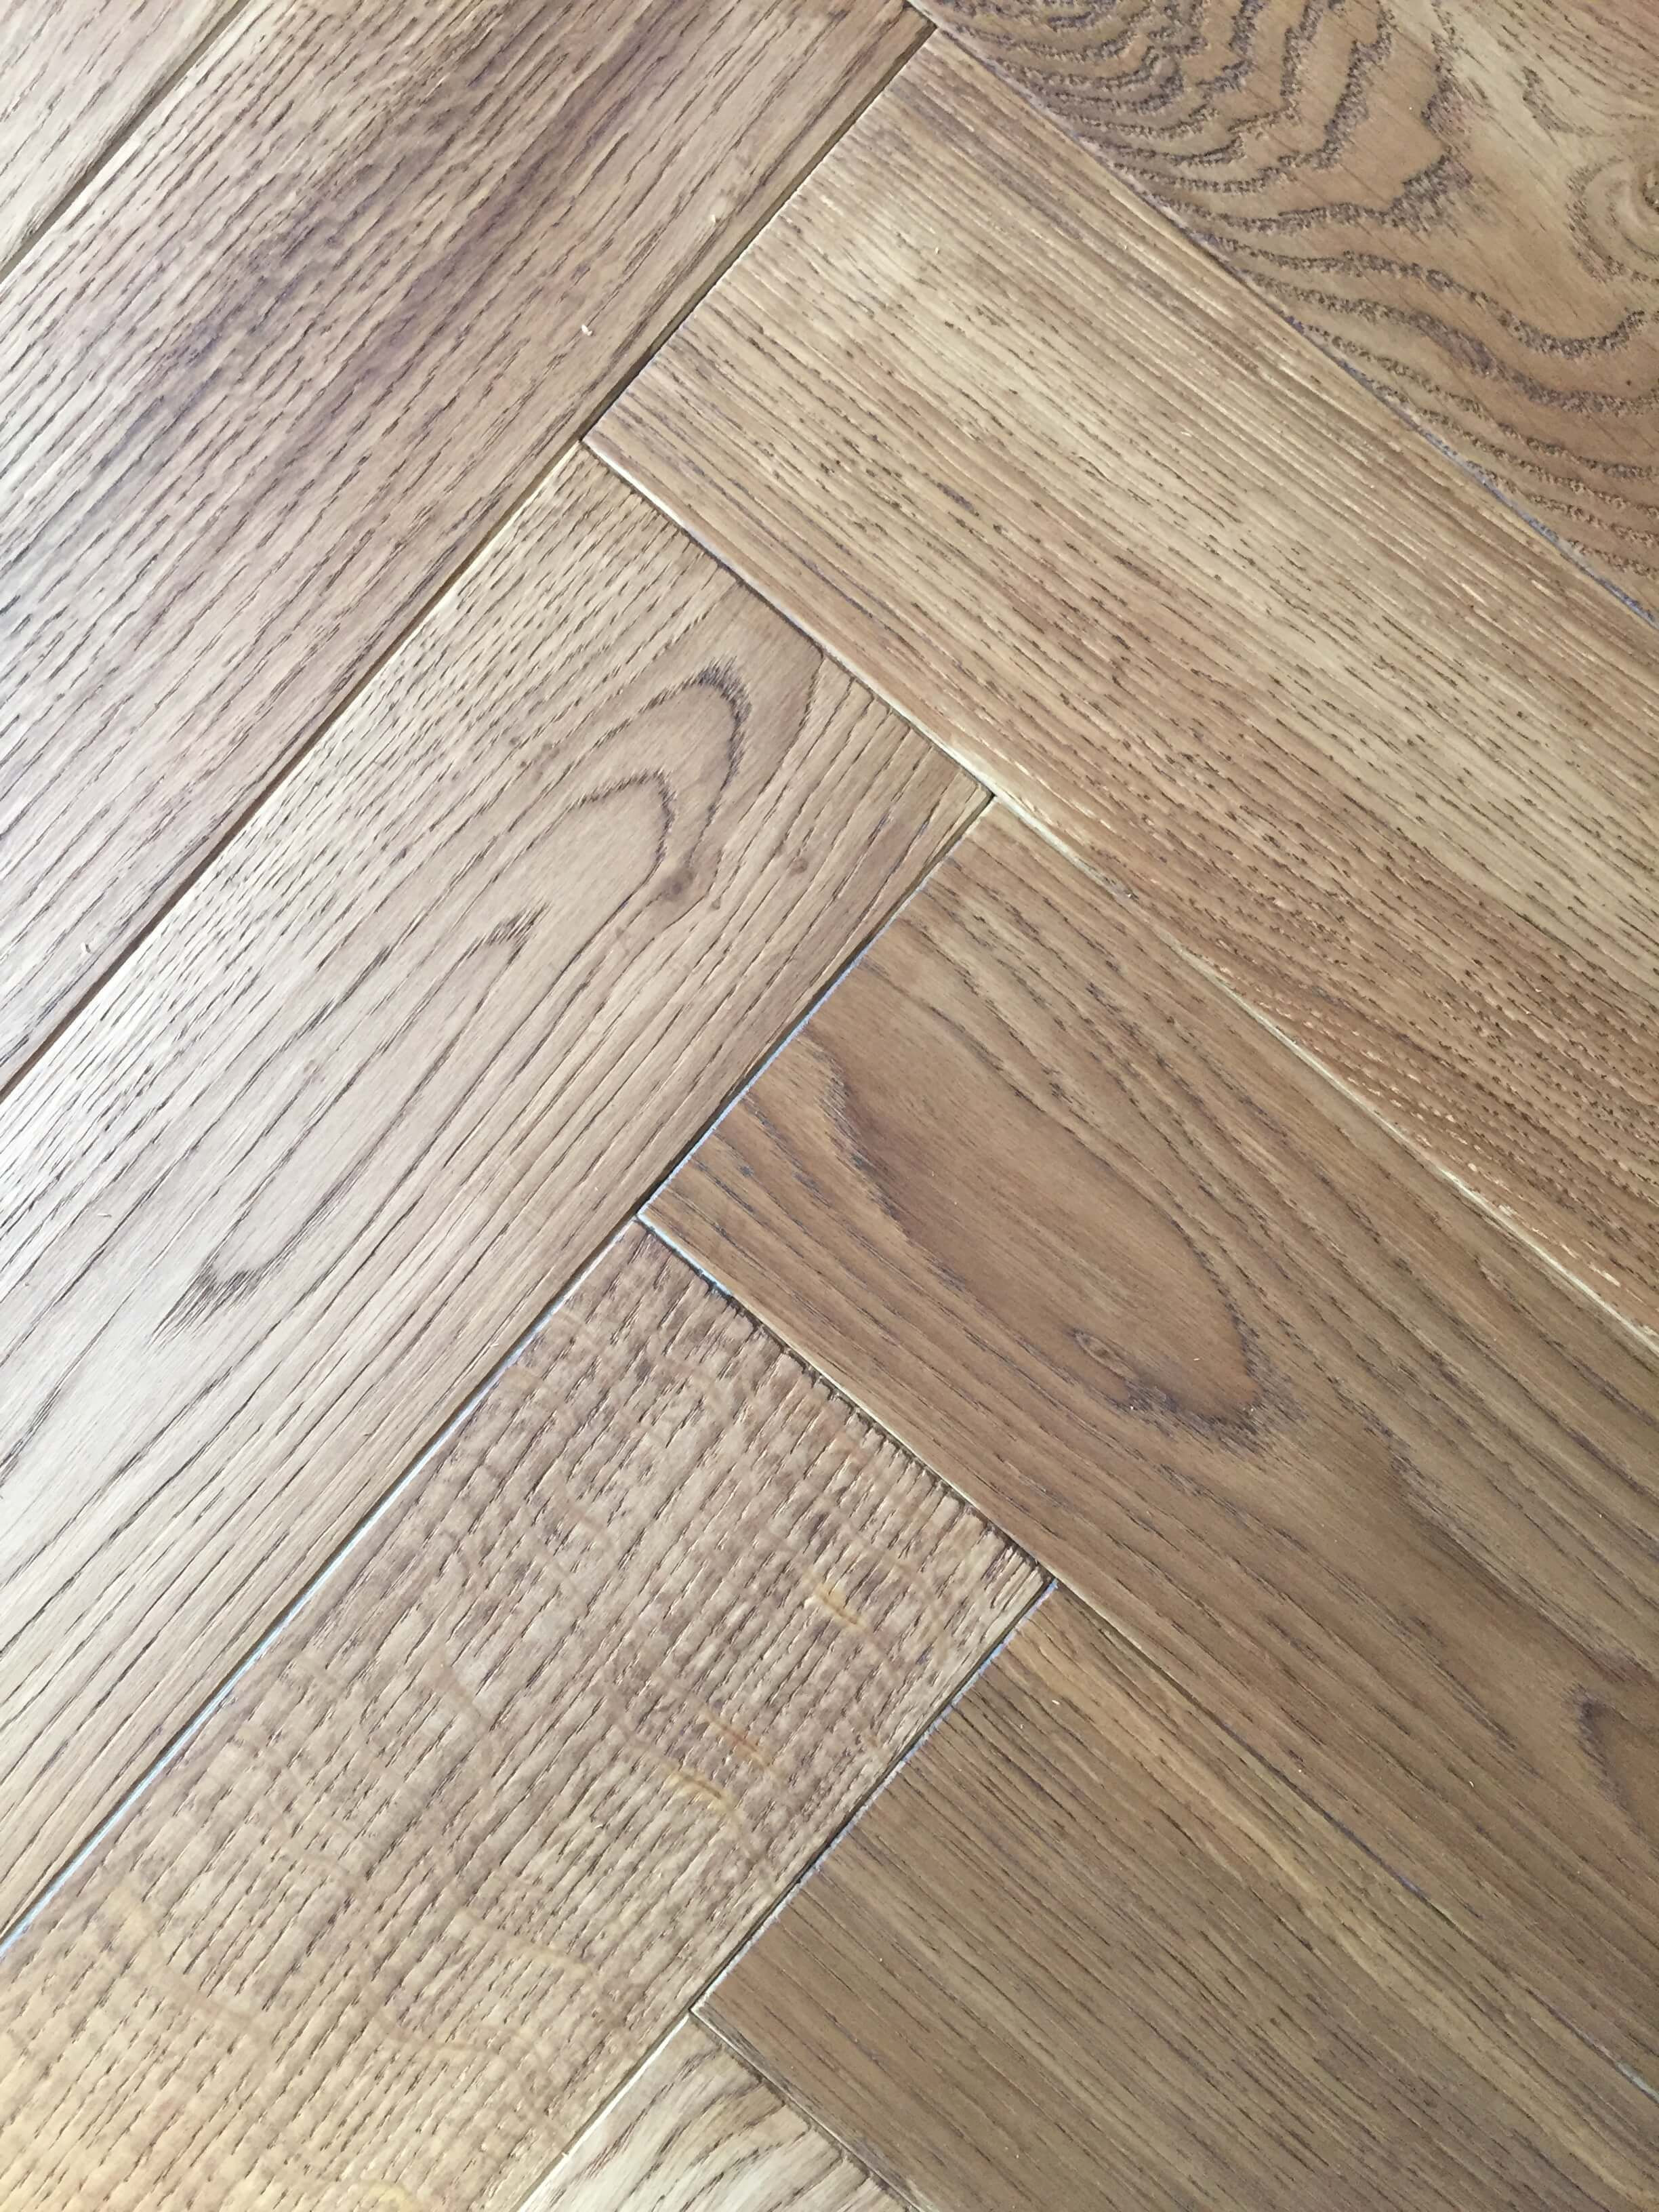 bruce hardwood floor cleaner home depot of how to clean laminated floor luxury 20 awesome engineered wood intended for how to clean laminated floor new laying laminate flooring krono original antique elm laminate of how